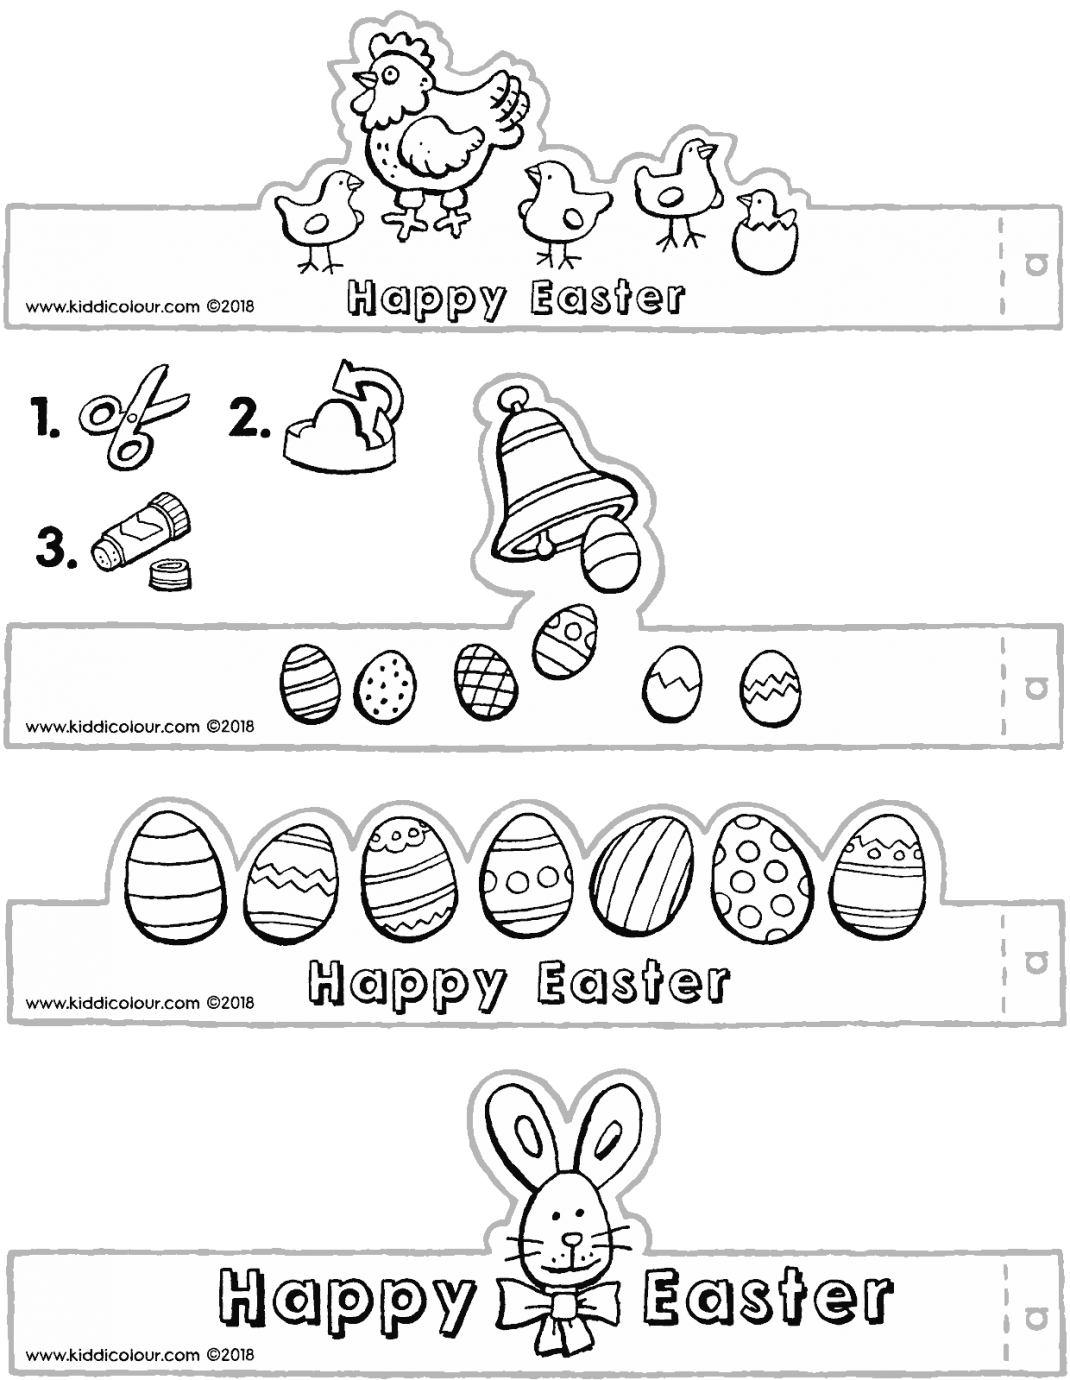 make your own Easter egg holders colouring page drawing picture 01V